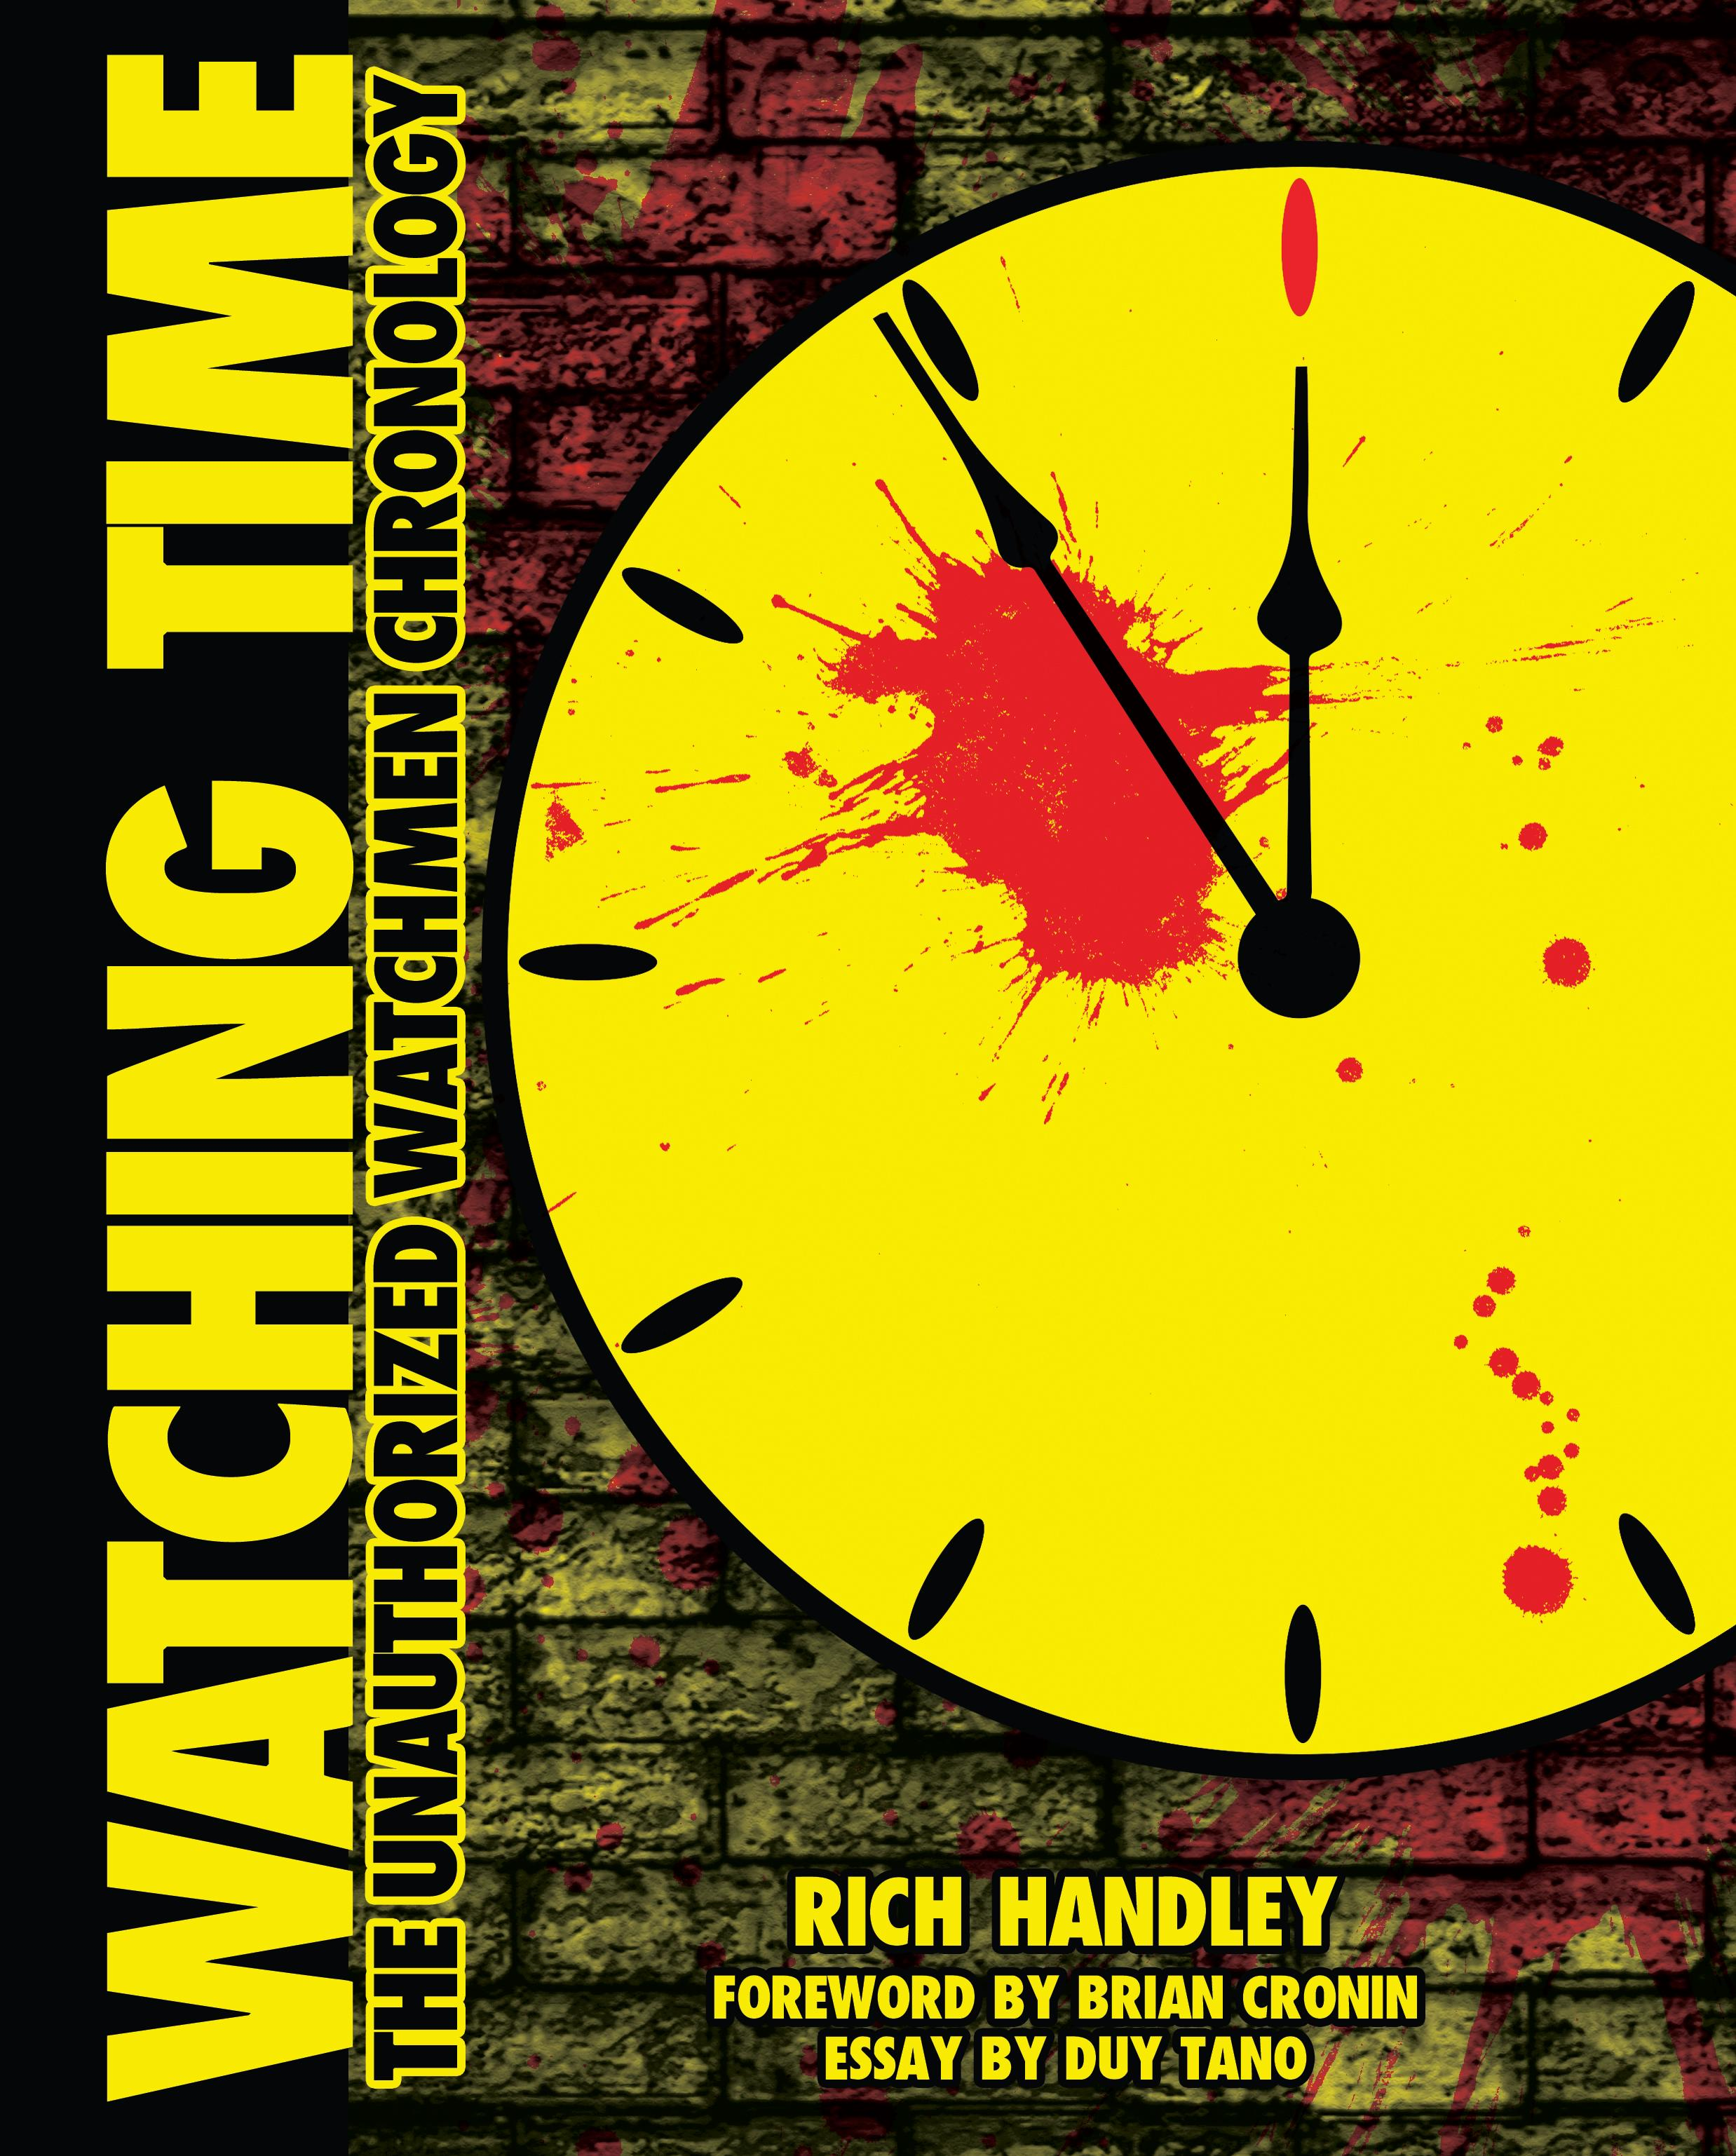 hasslein books publishes watching time the unauthorized watchmen  in 1986 the comic book world experienced a profound paradigm shift thanks to writer alan moore and artist dave gibbons gone were the long held notions